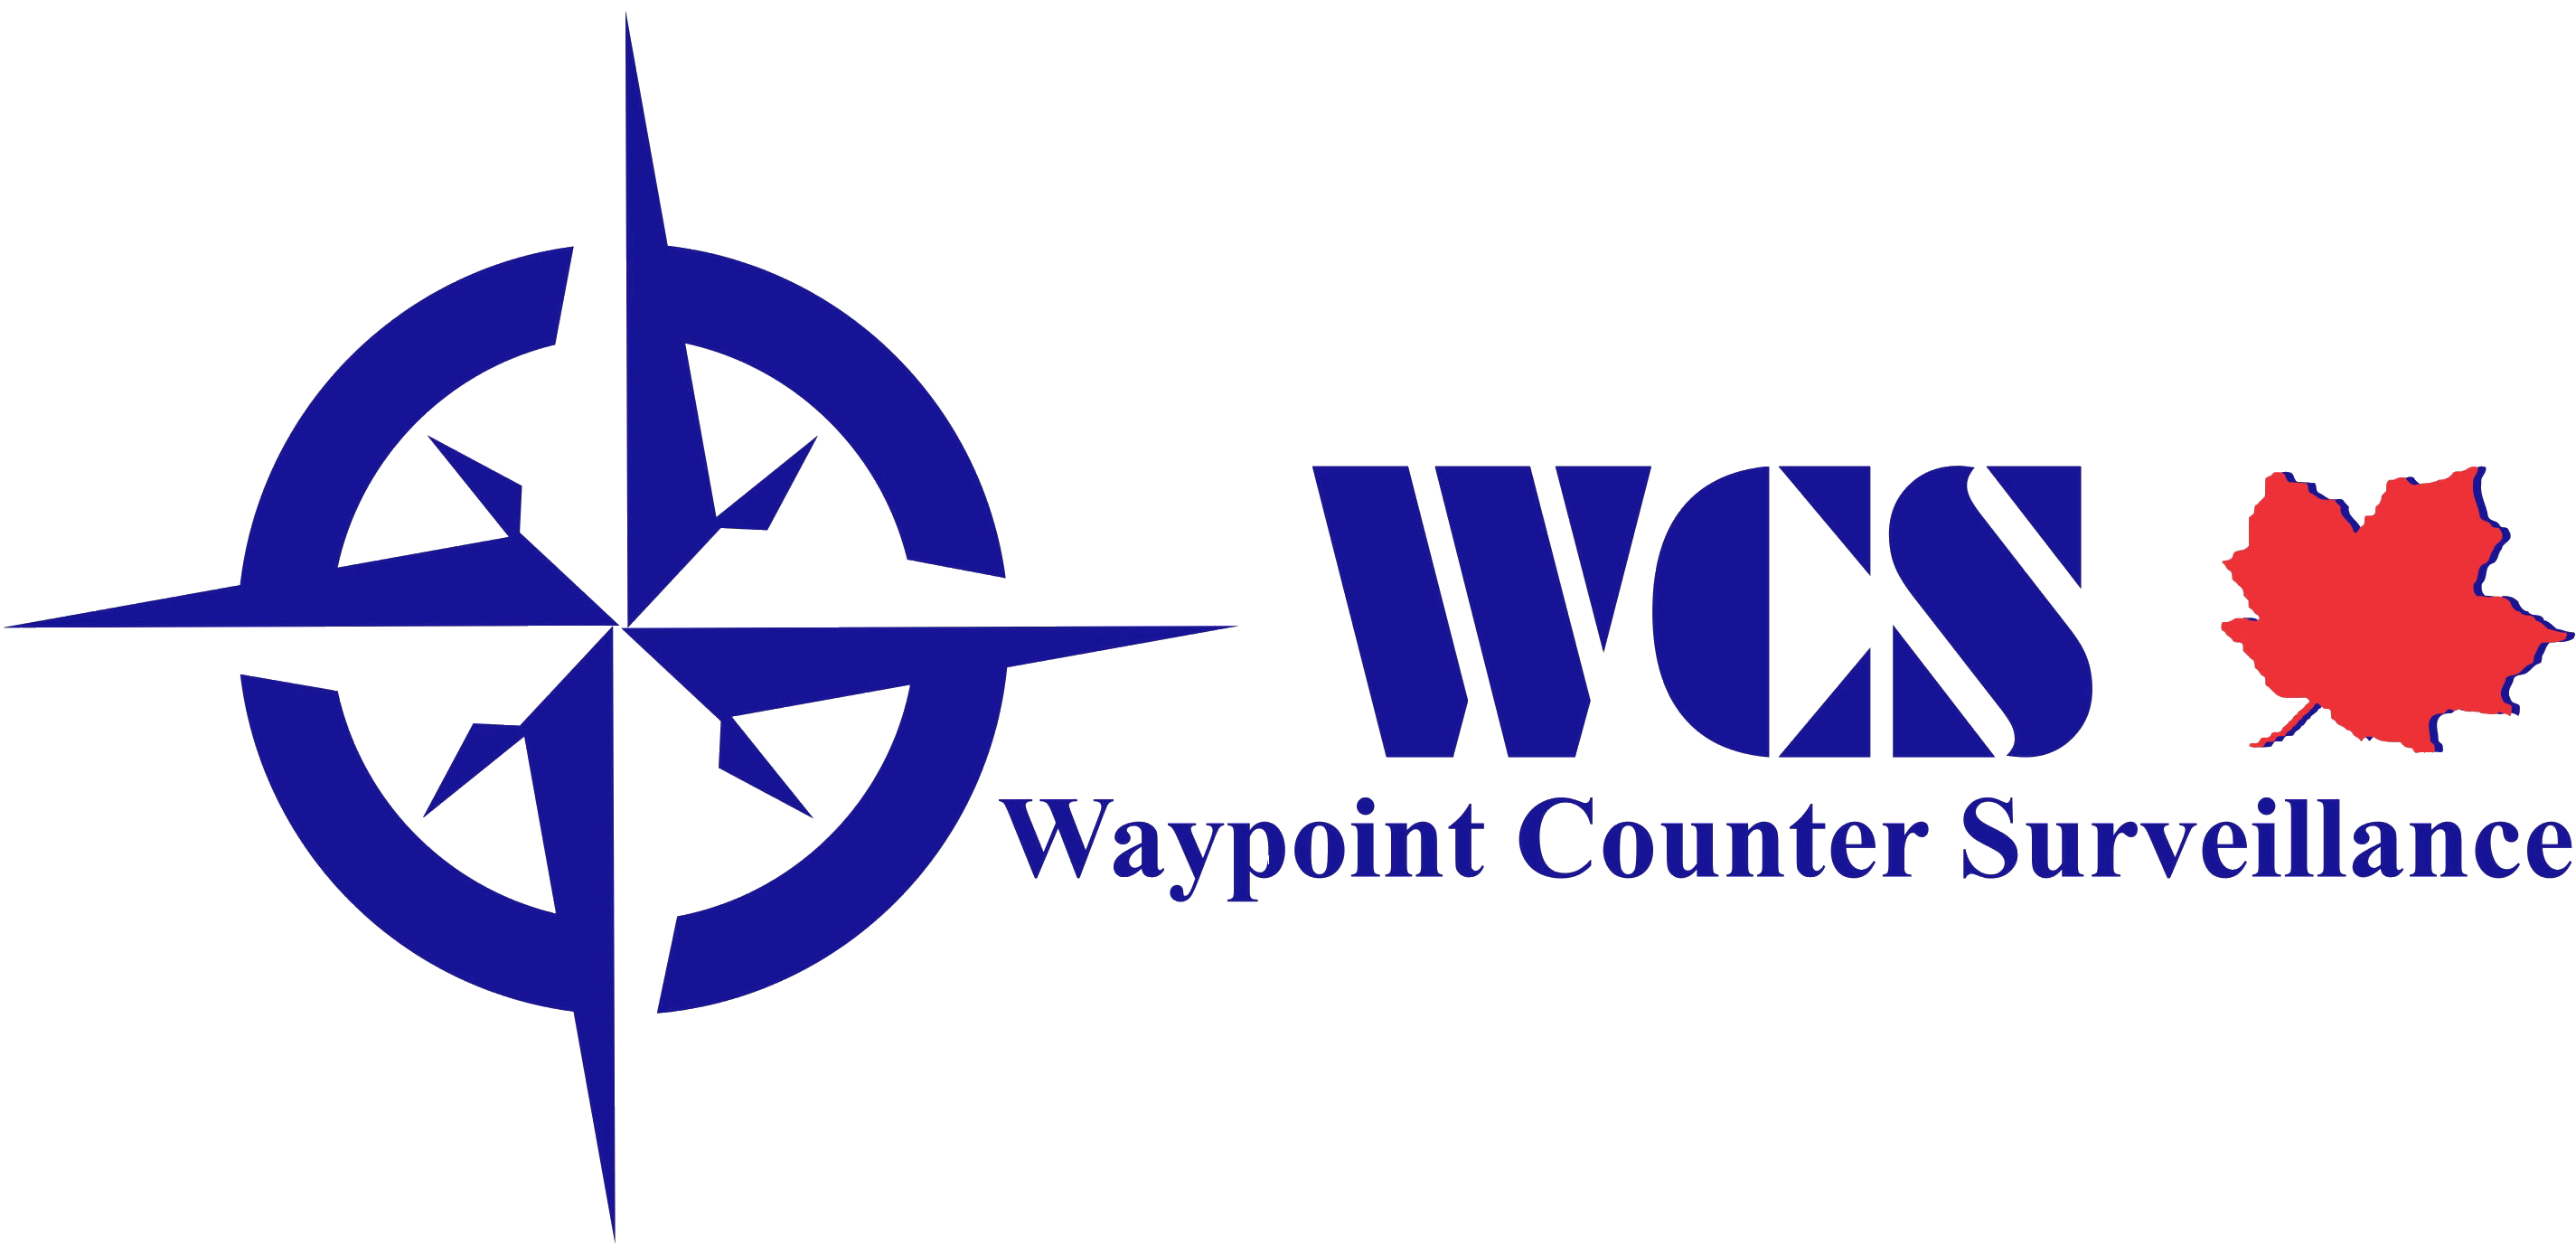 Waypoint Counter Surveillance Inc